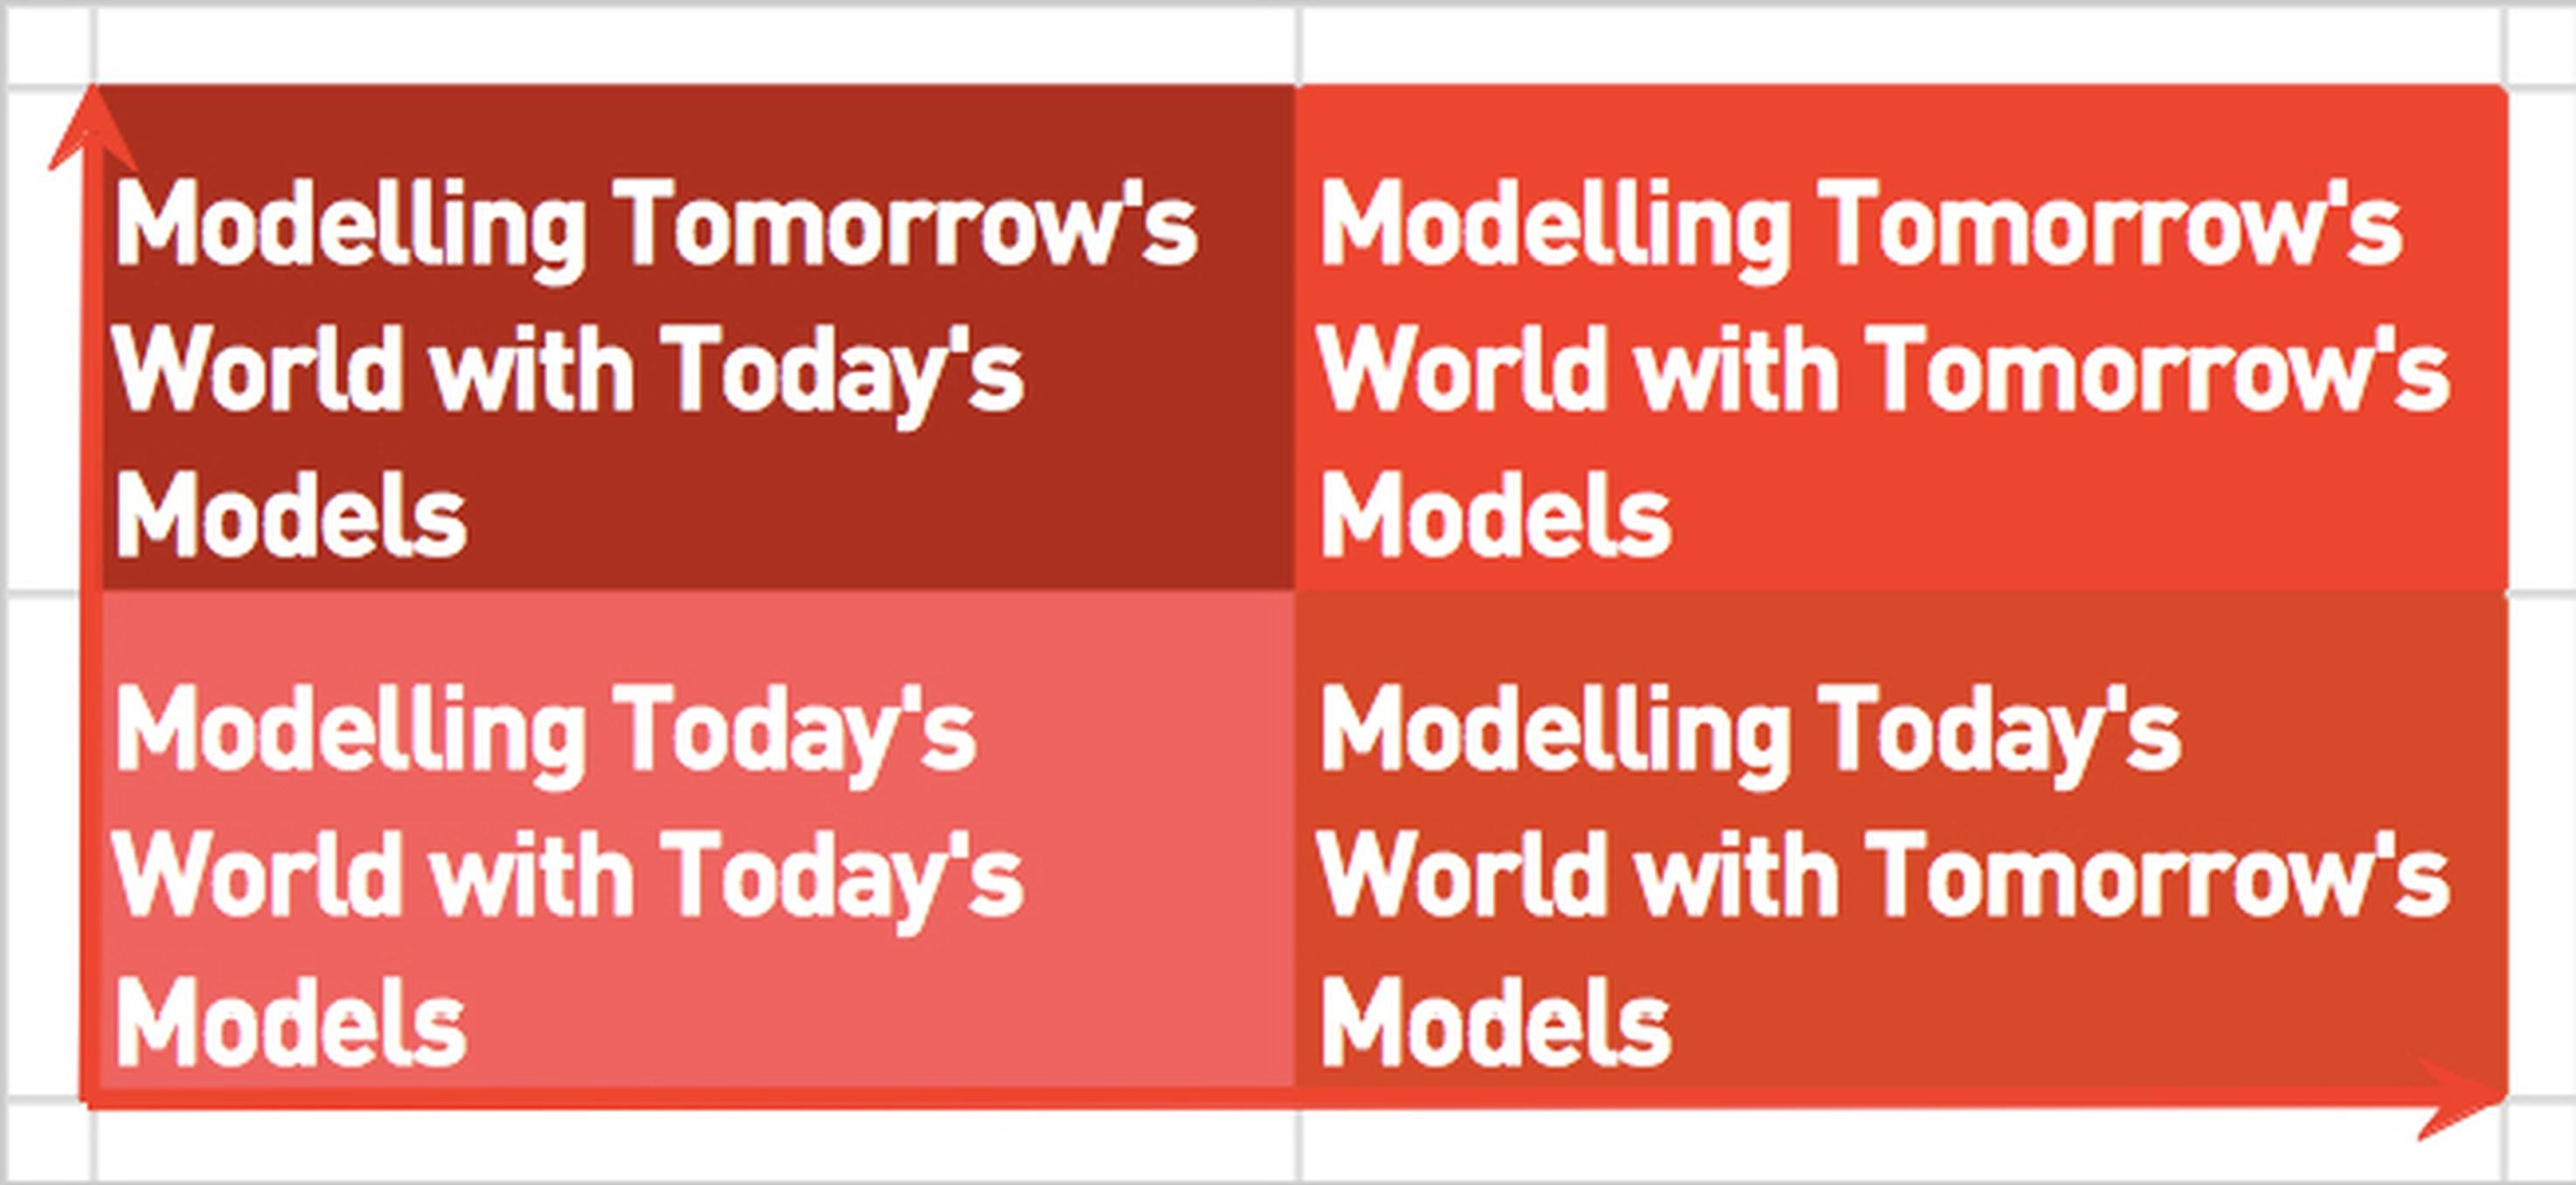 Modelling Tomorrow's World: four perspectives